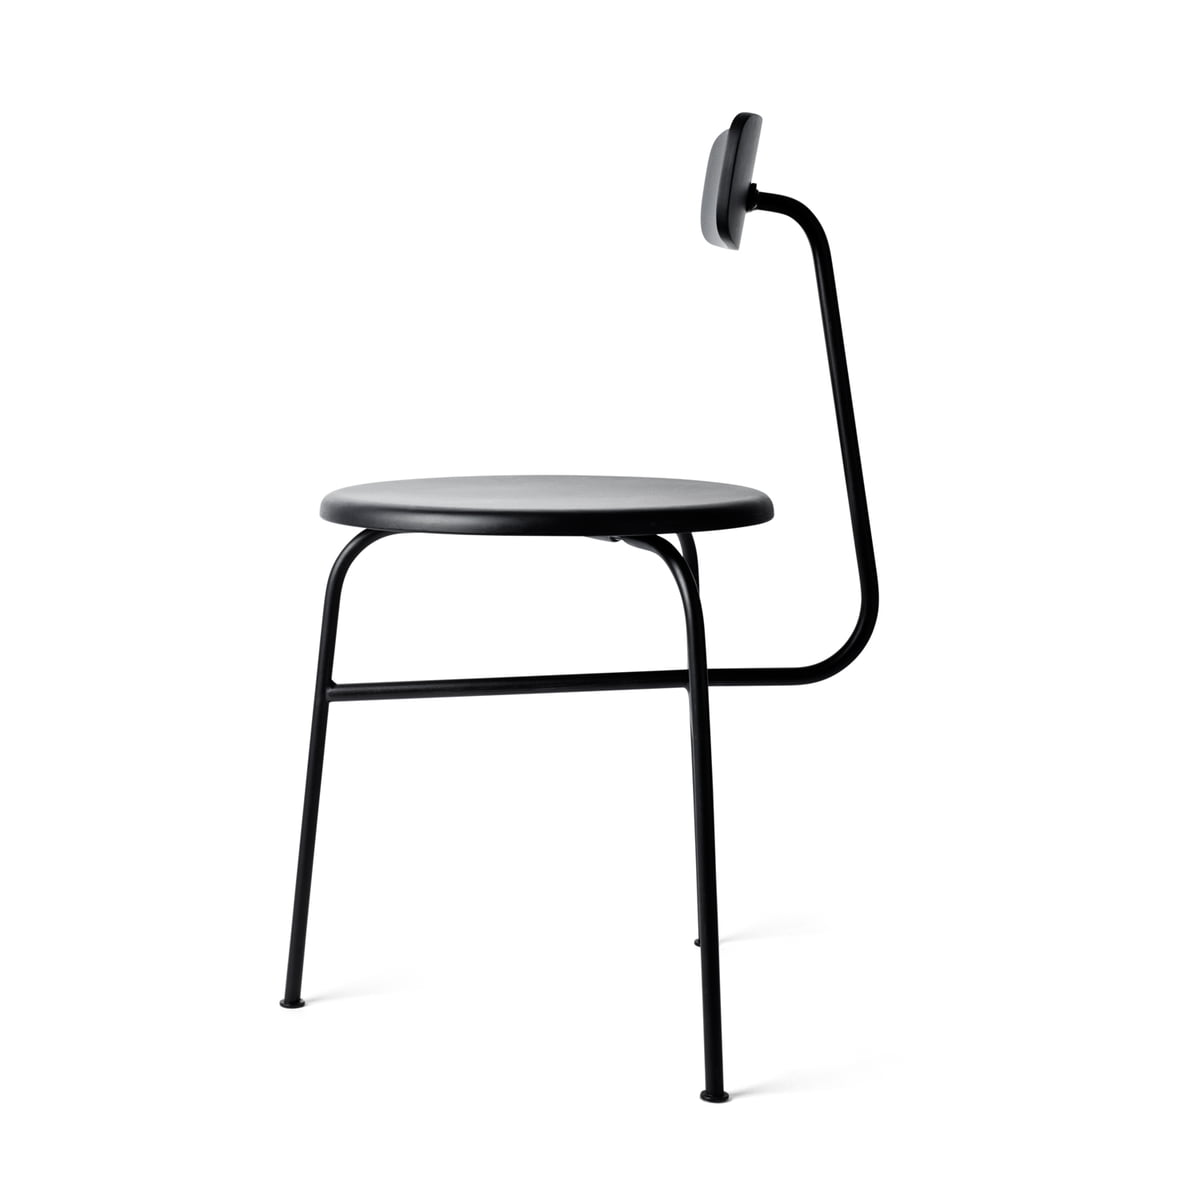 Minimalistic Wall Clock The Afteroom Chair By Menu In The Shop